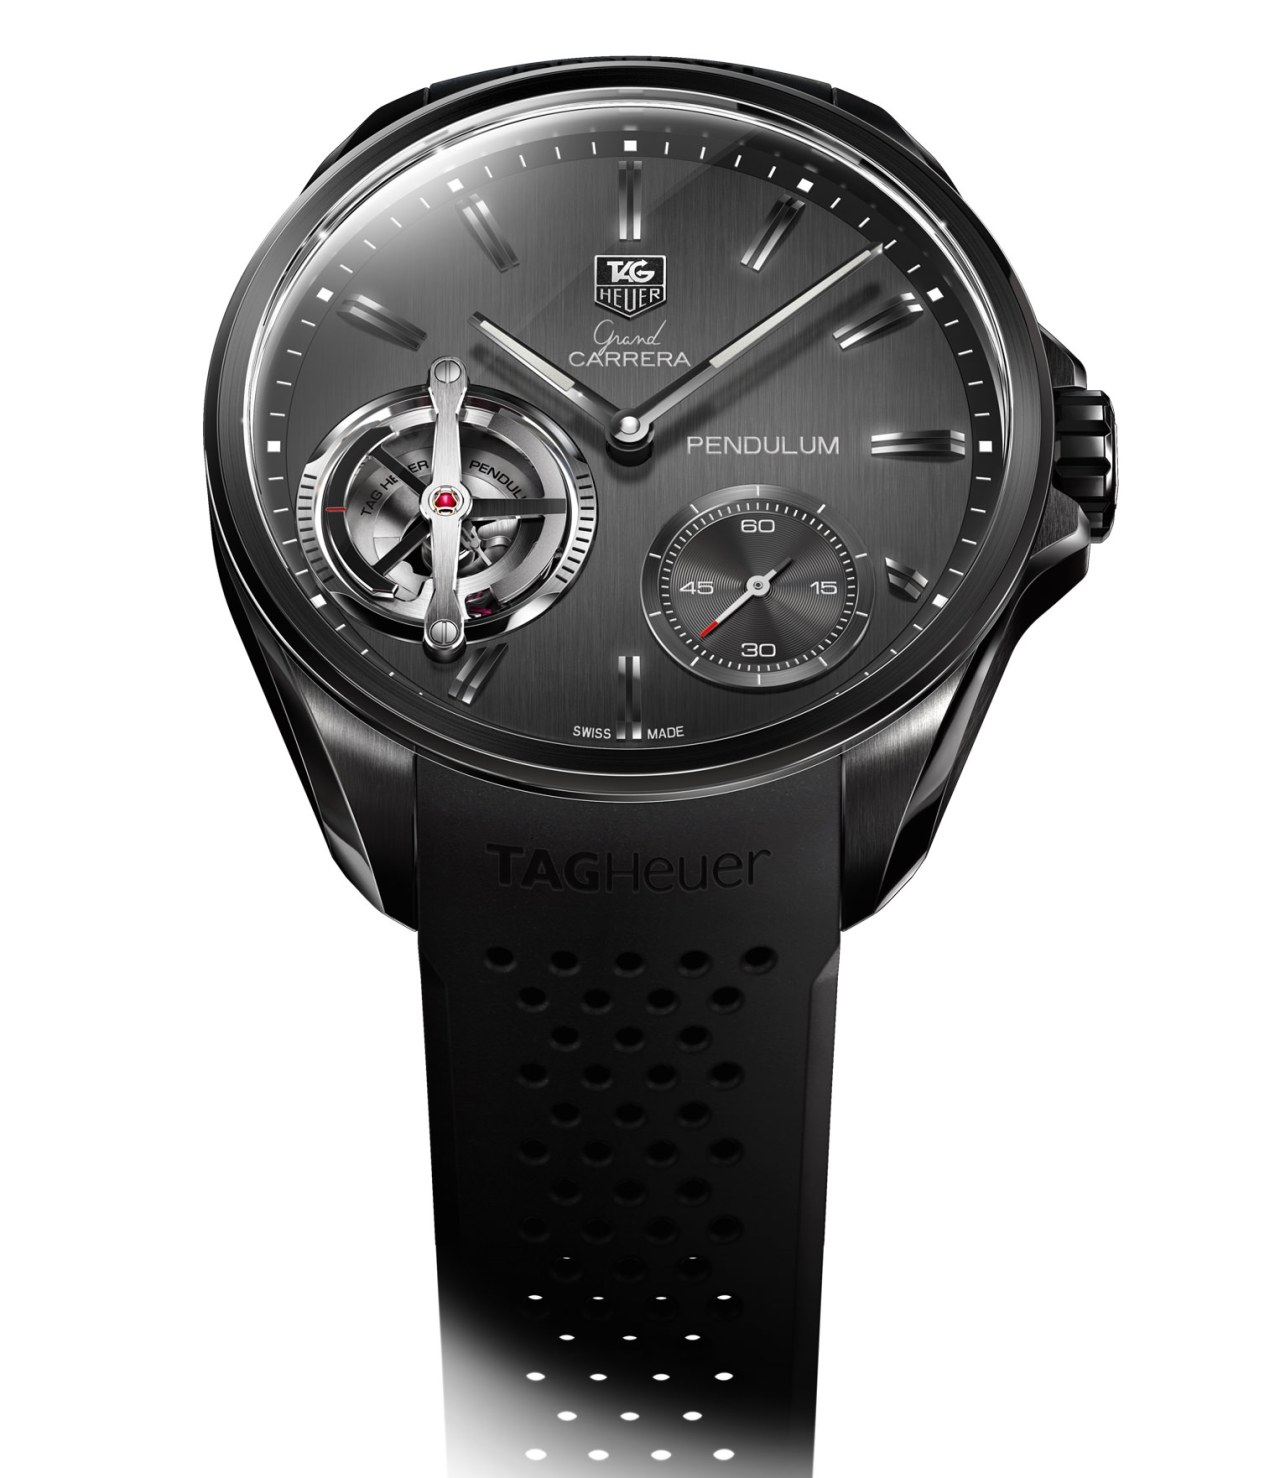 TAG-Heuer-Grand-Carrera-Pendulum-1-1